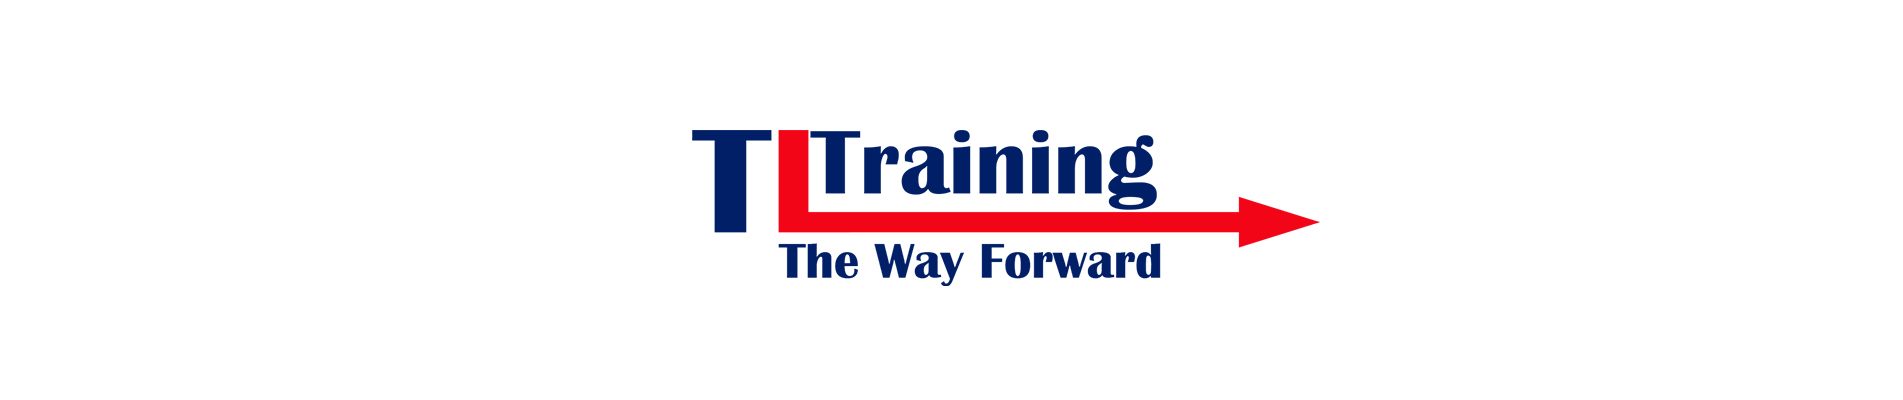 New website for TL Training goes live